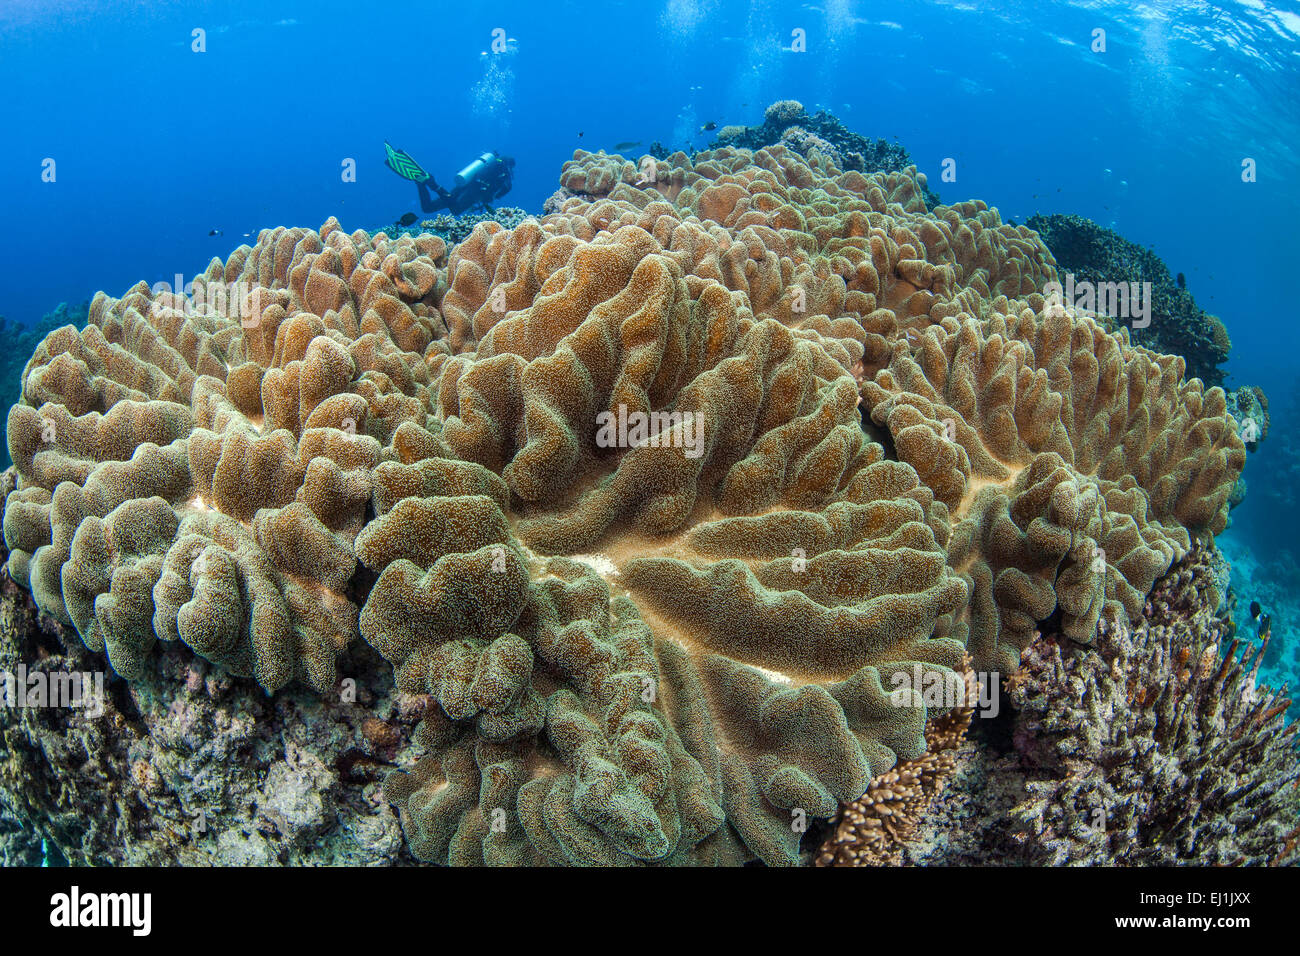 Large leather coral colony with scuba diver in background. Spratly Islands, South China Sea. - Stock Image